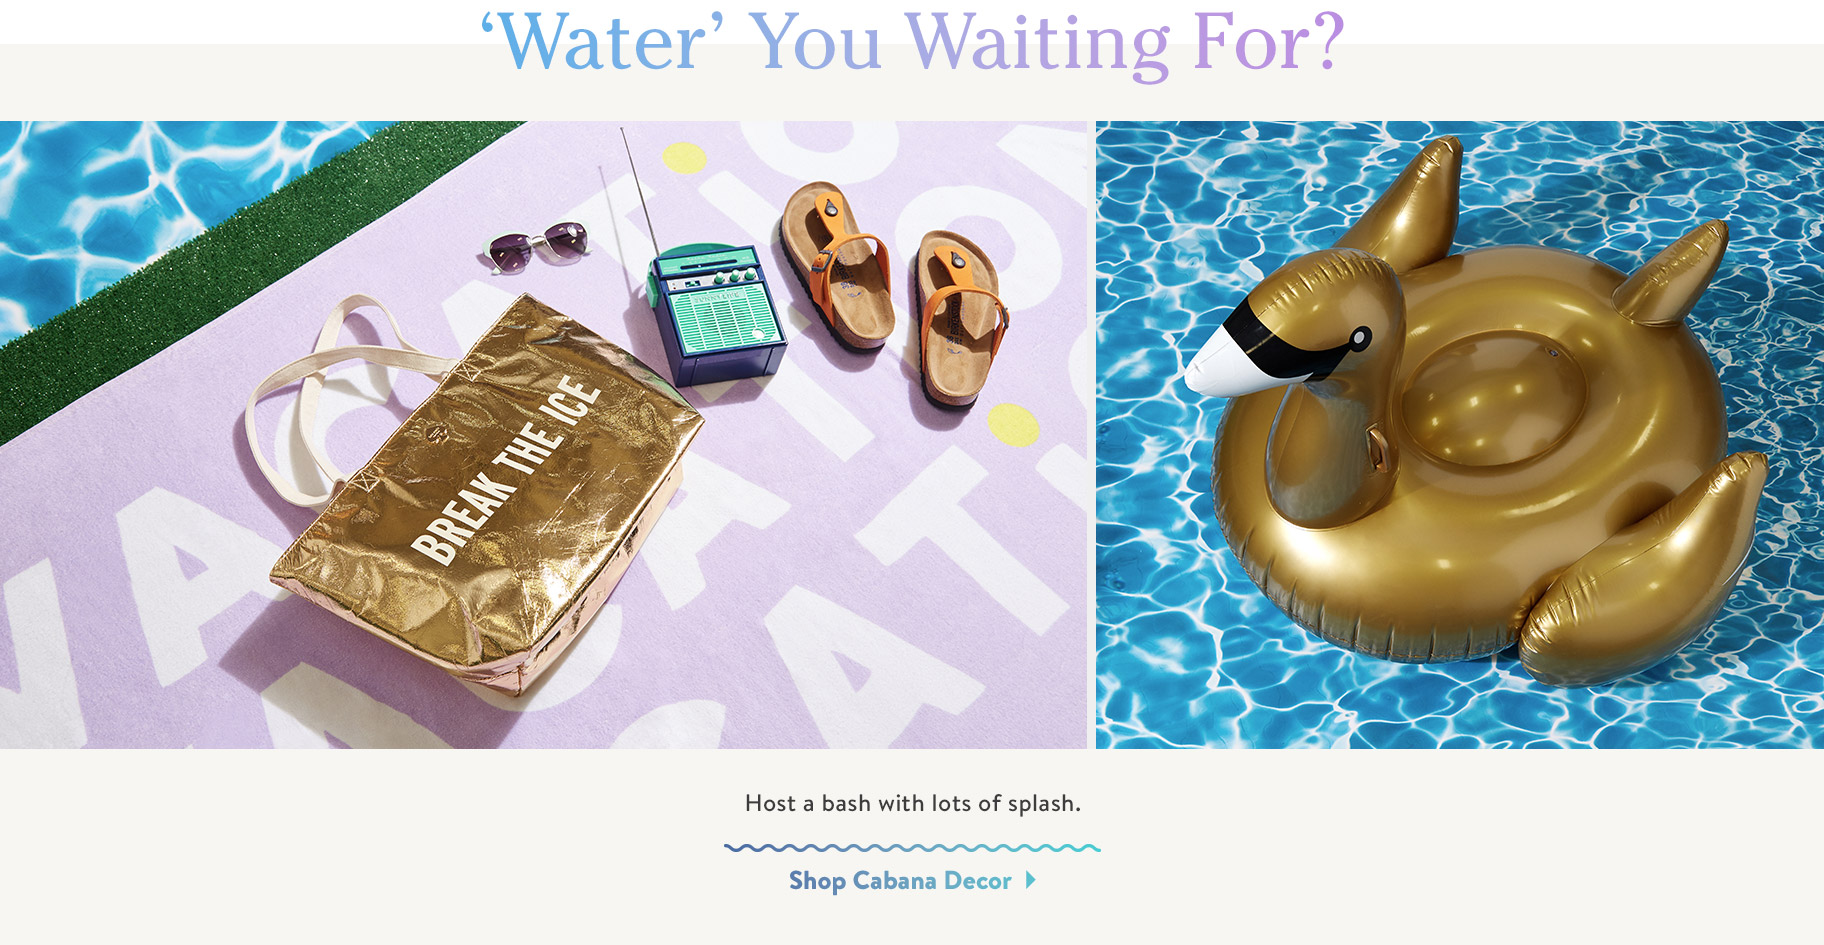 'Water' You Waiting For? Host a bash with lots of splash. Shop Cabana Decor.